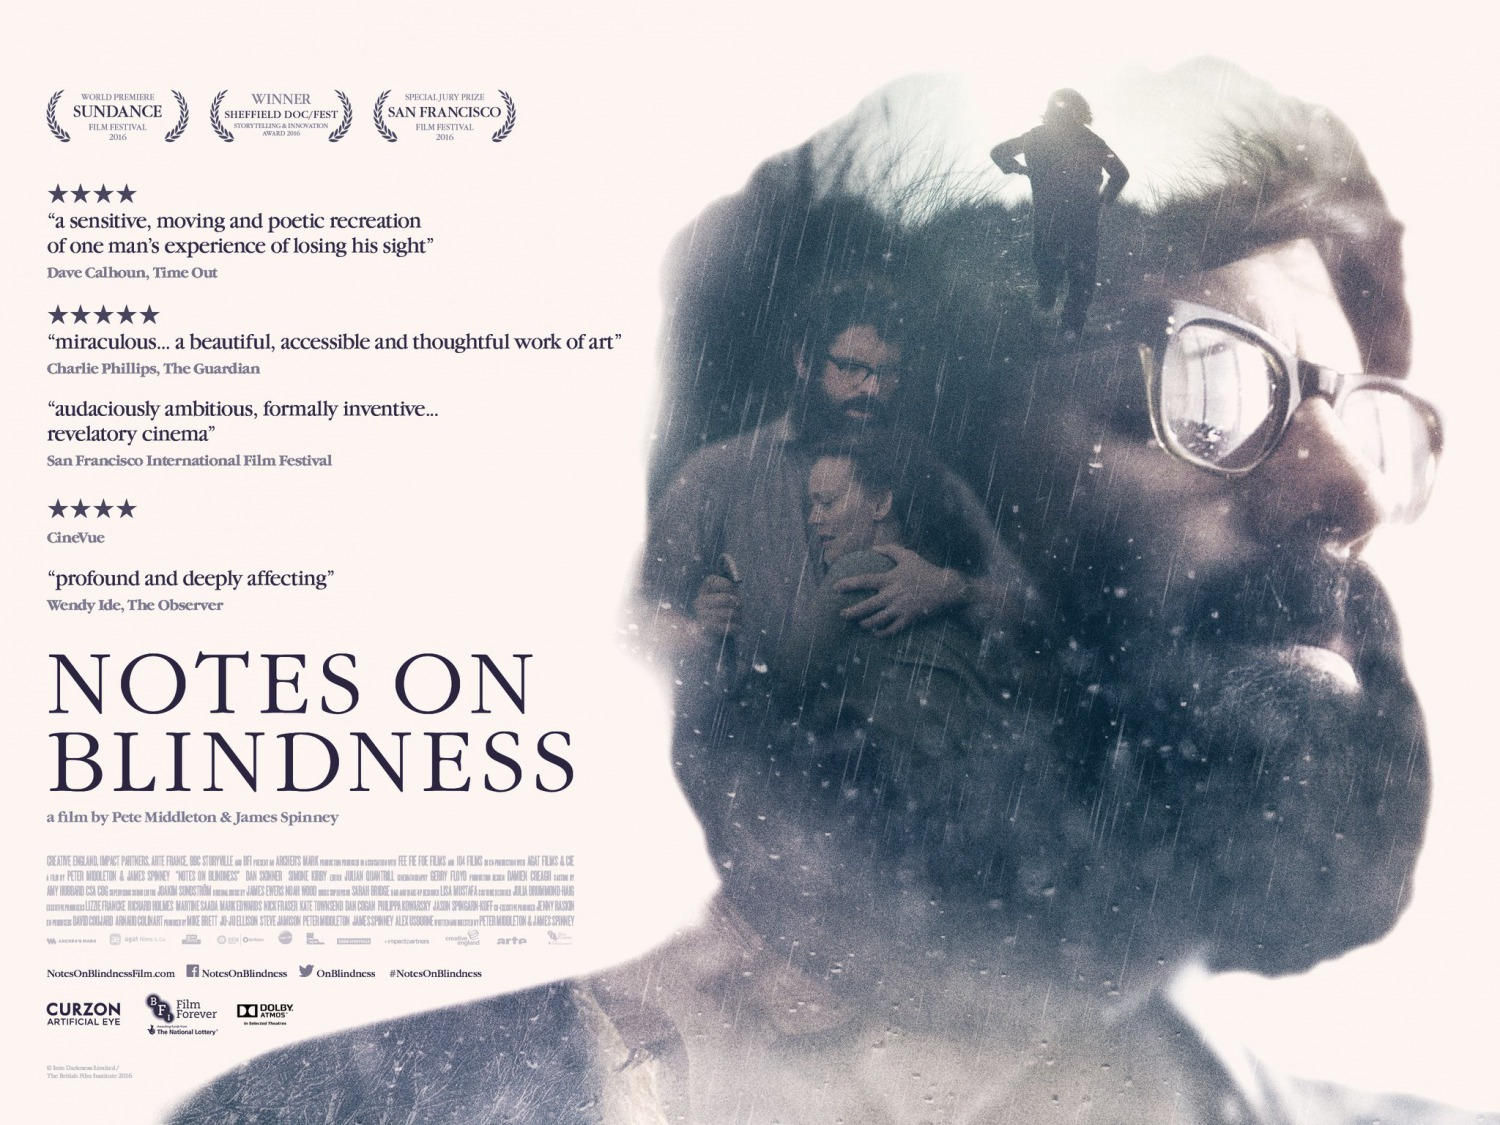 Extra Large Movie Poster Image for Notes on Blindness